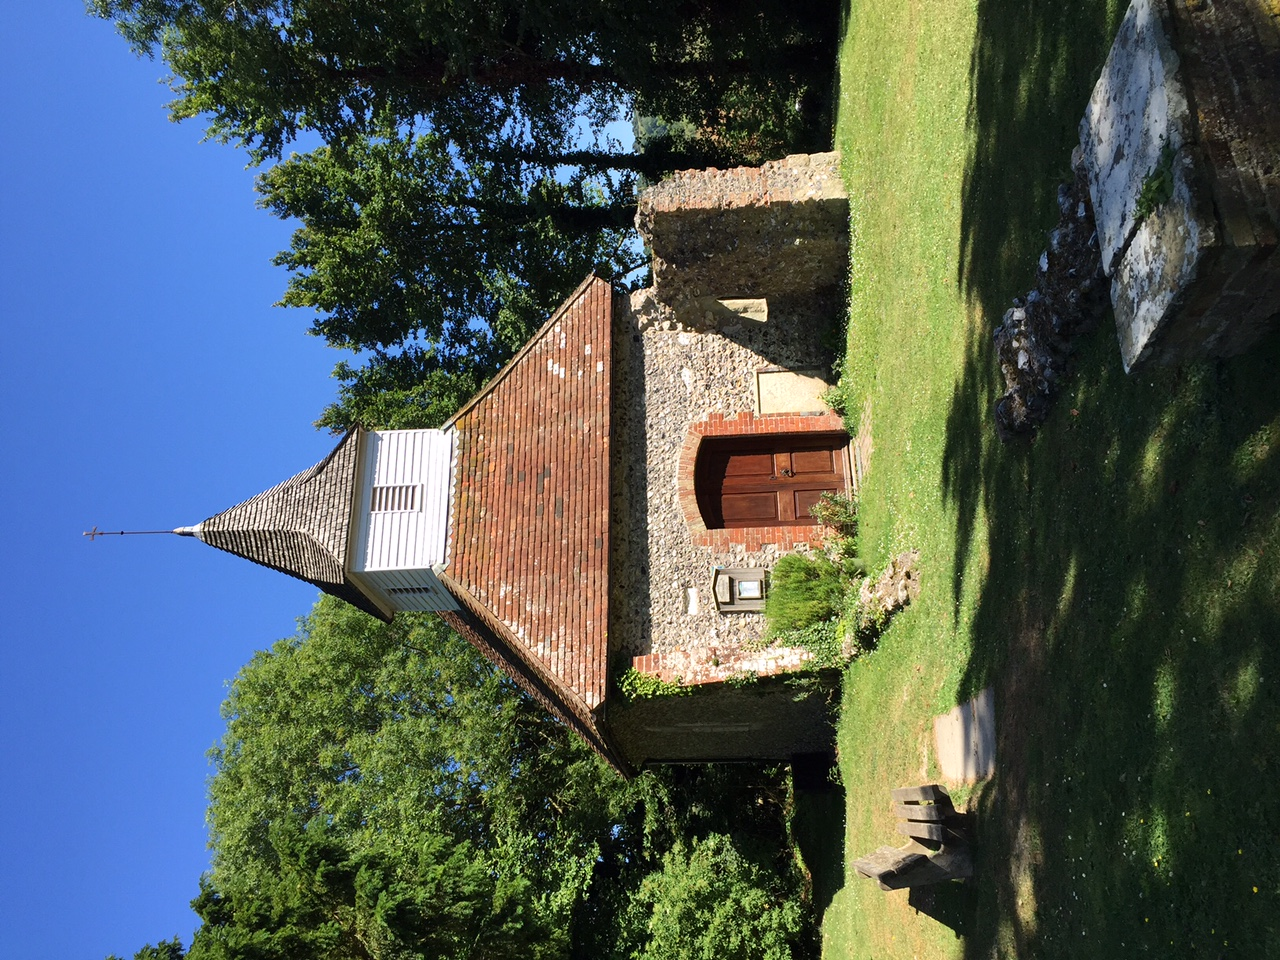 Lullington Church, the smallest church in England!